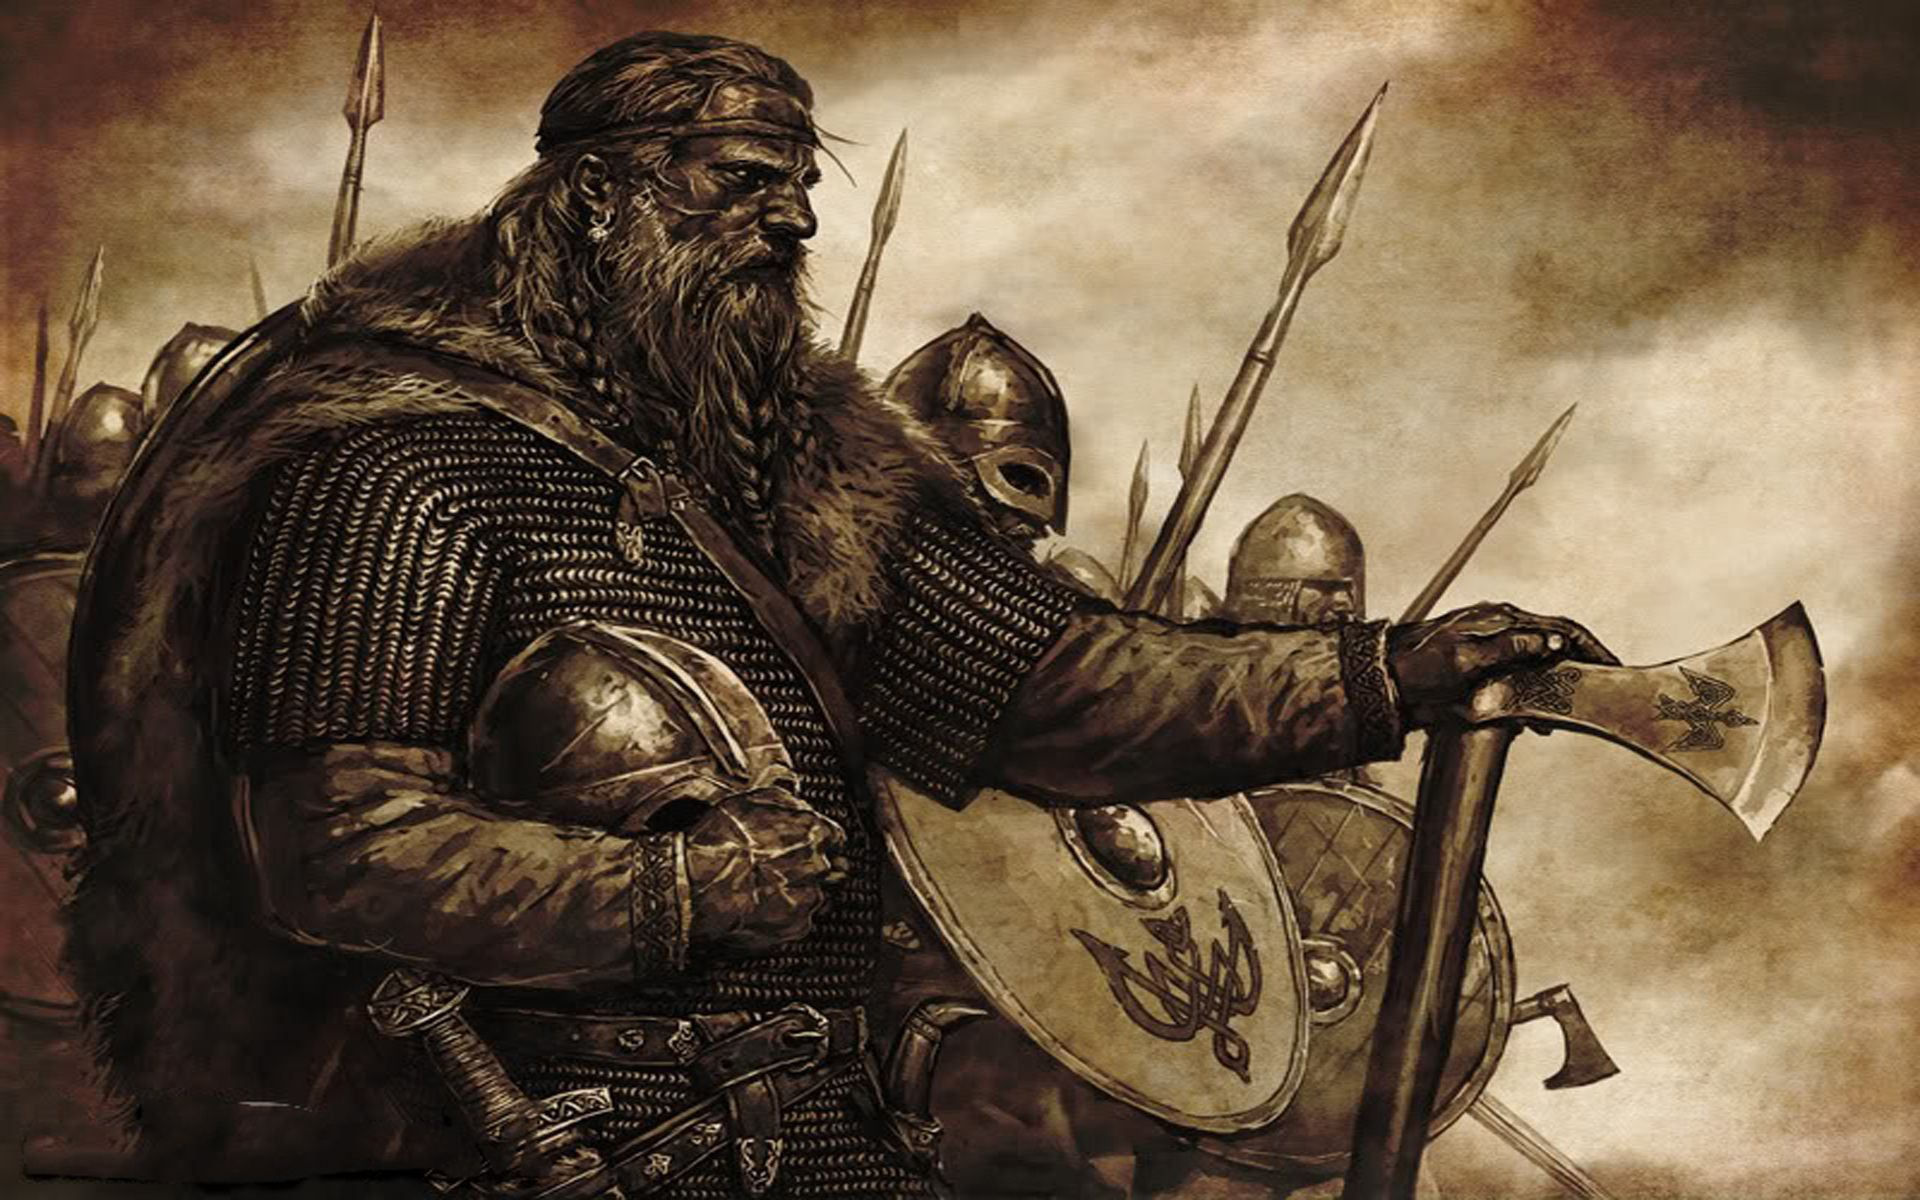 Collection of Viking Wallpaper on HDWallpapers 1920x1200